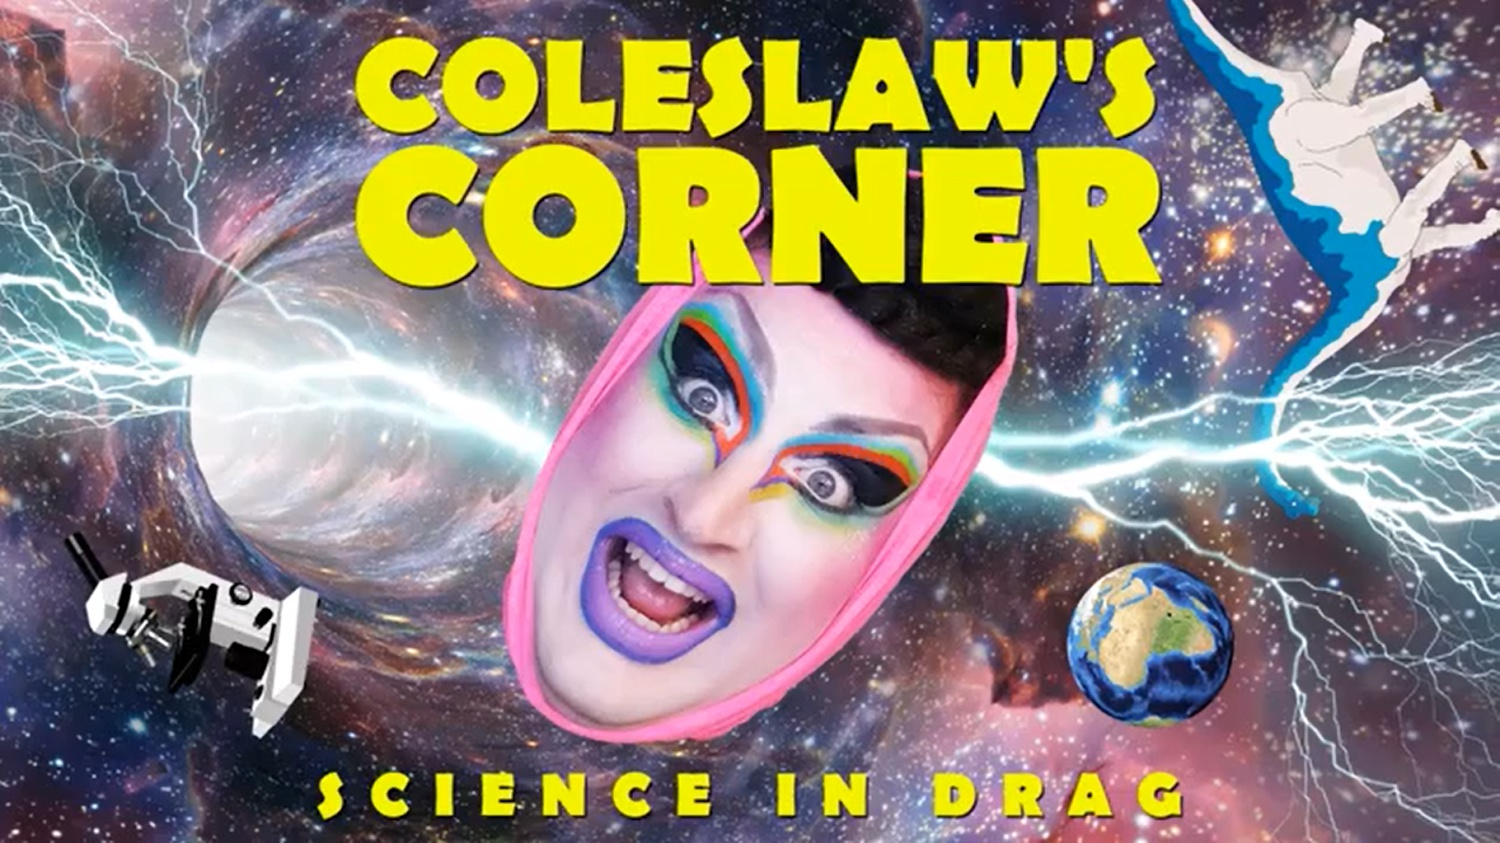 Coleslaw's Corner brings funny and enlightening conversations about science and technology into viewers' homes.